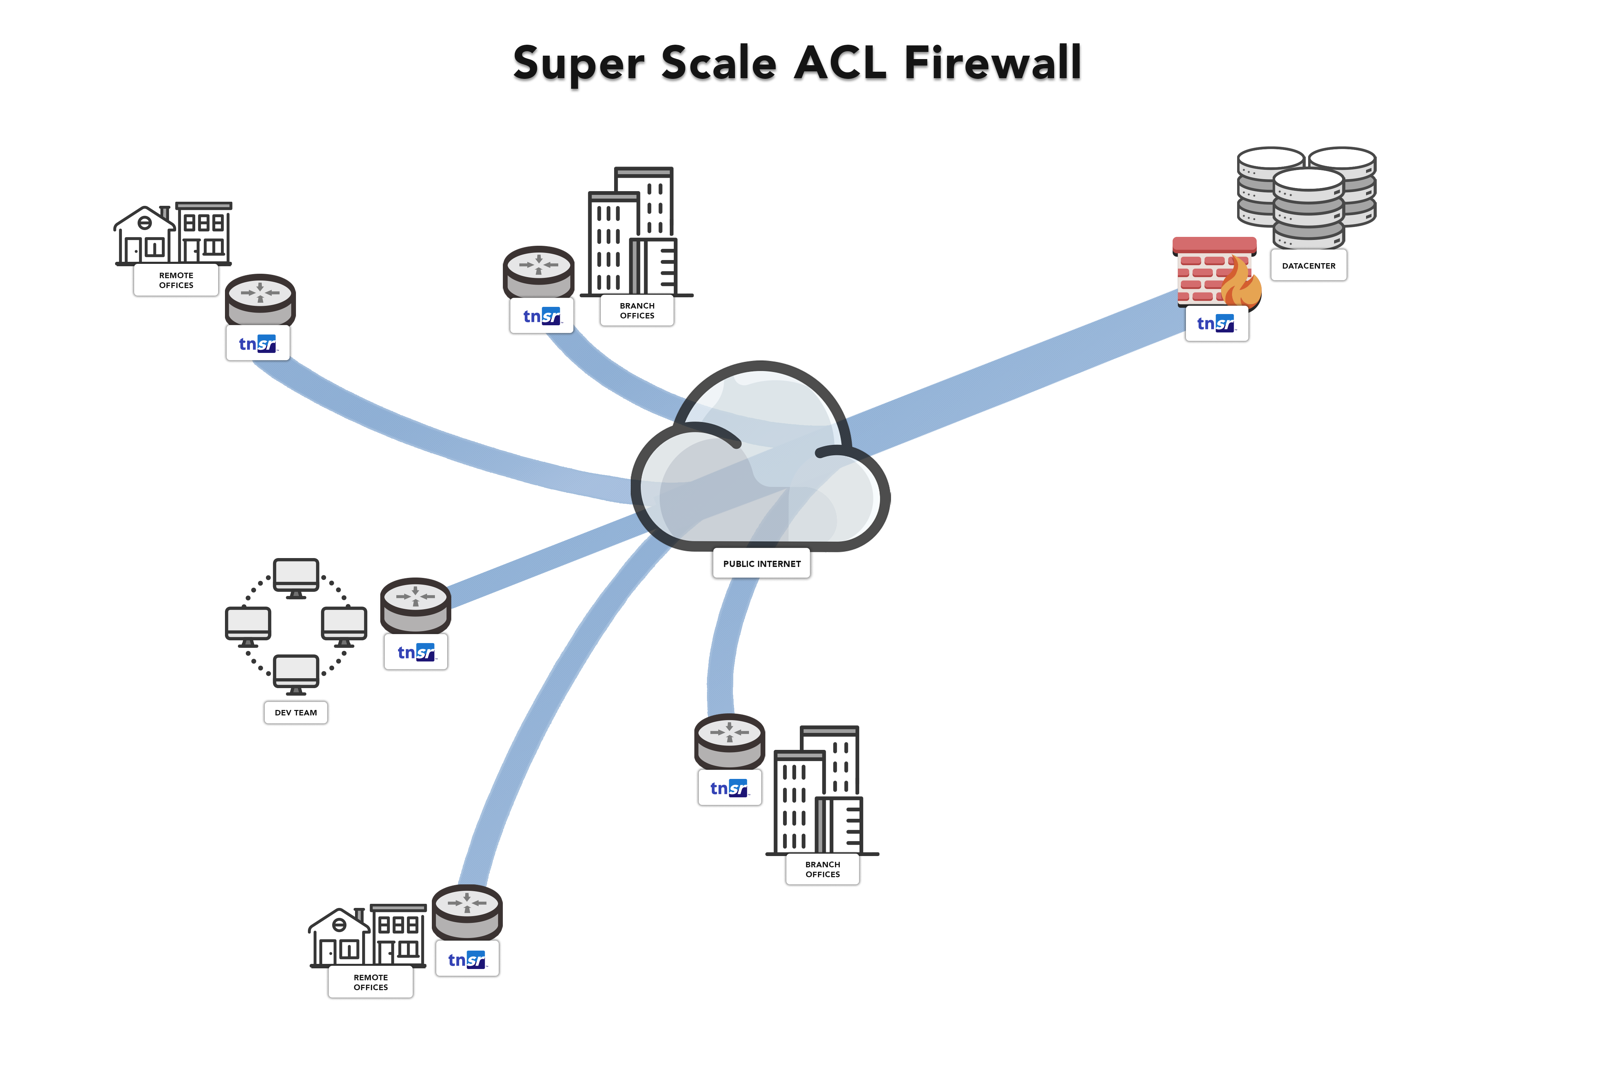 Super Scale ACL Firewall